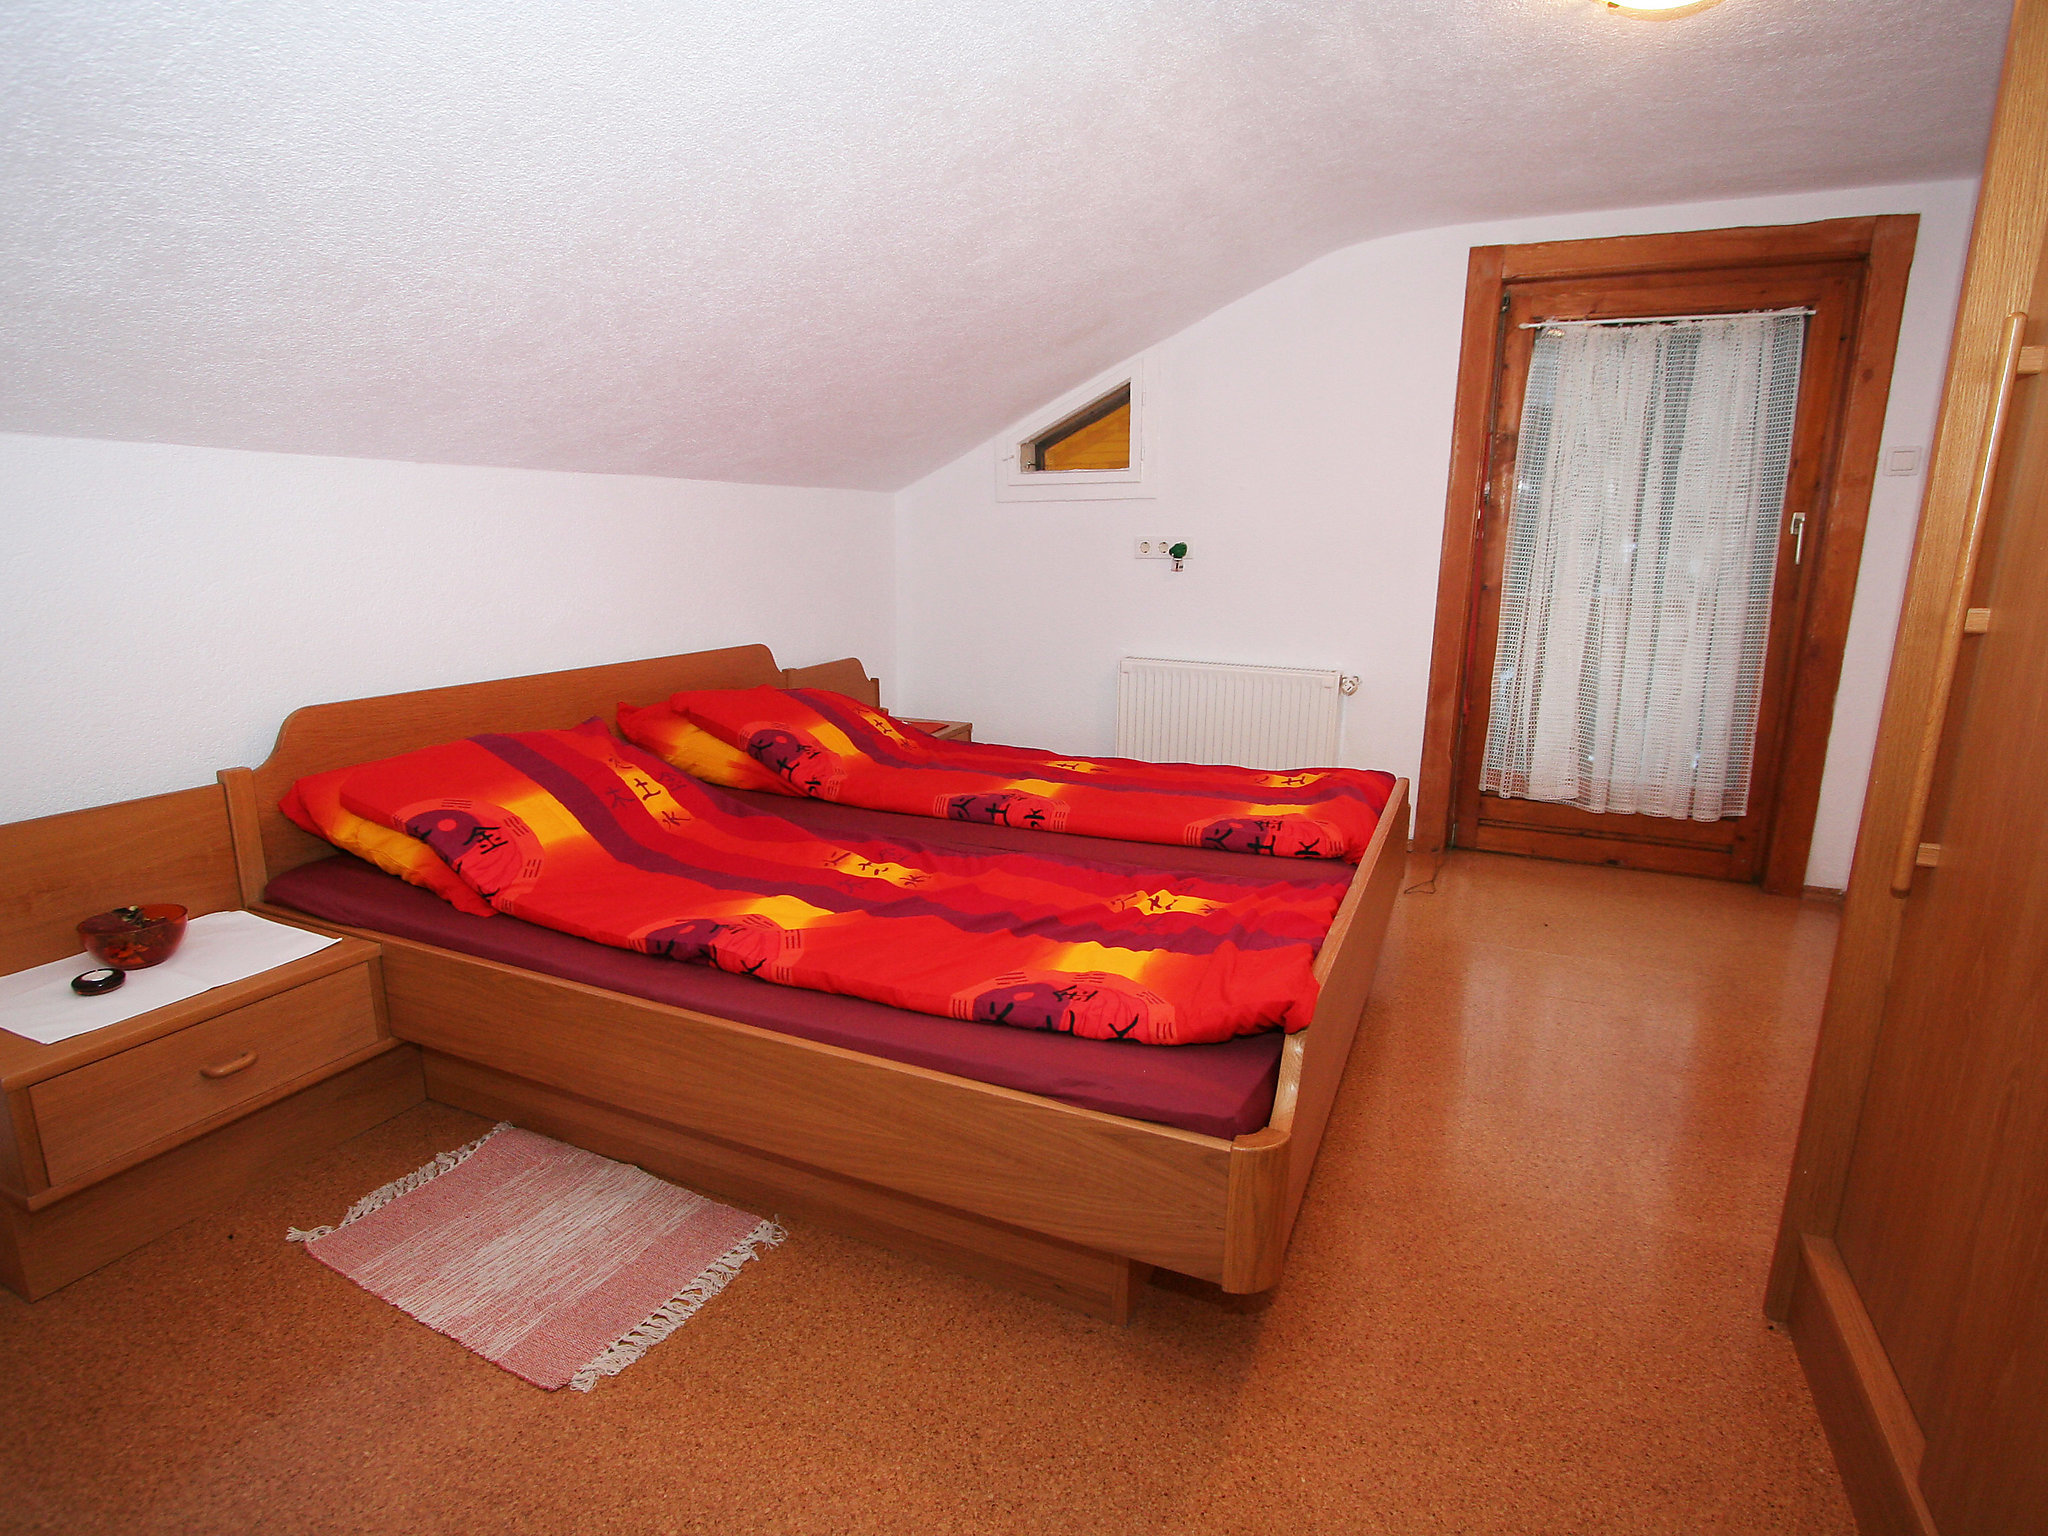 zell am see chat rooms The hotel berner in zell am see offers you different types of rooms for your vacation suites, junior suites and double rooms are all equiped with balcony.